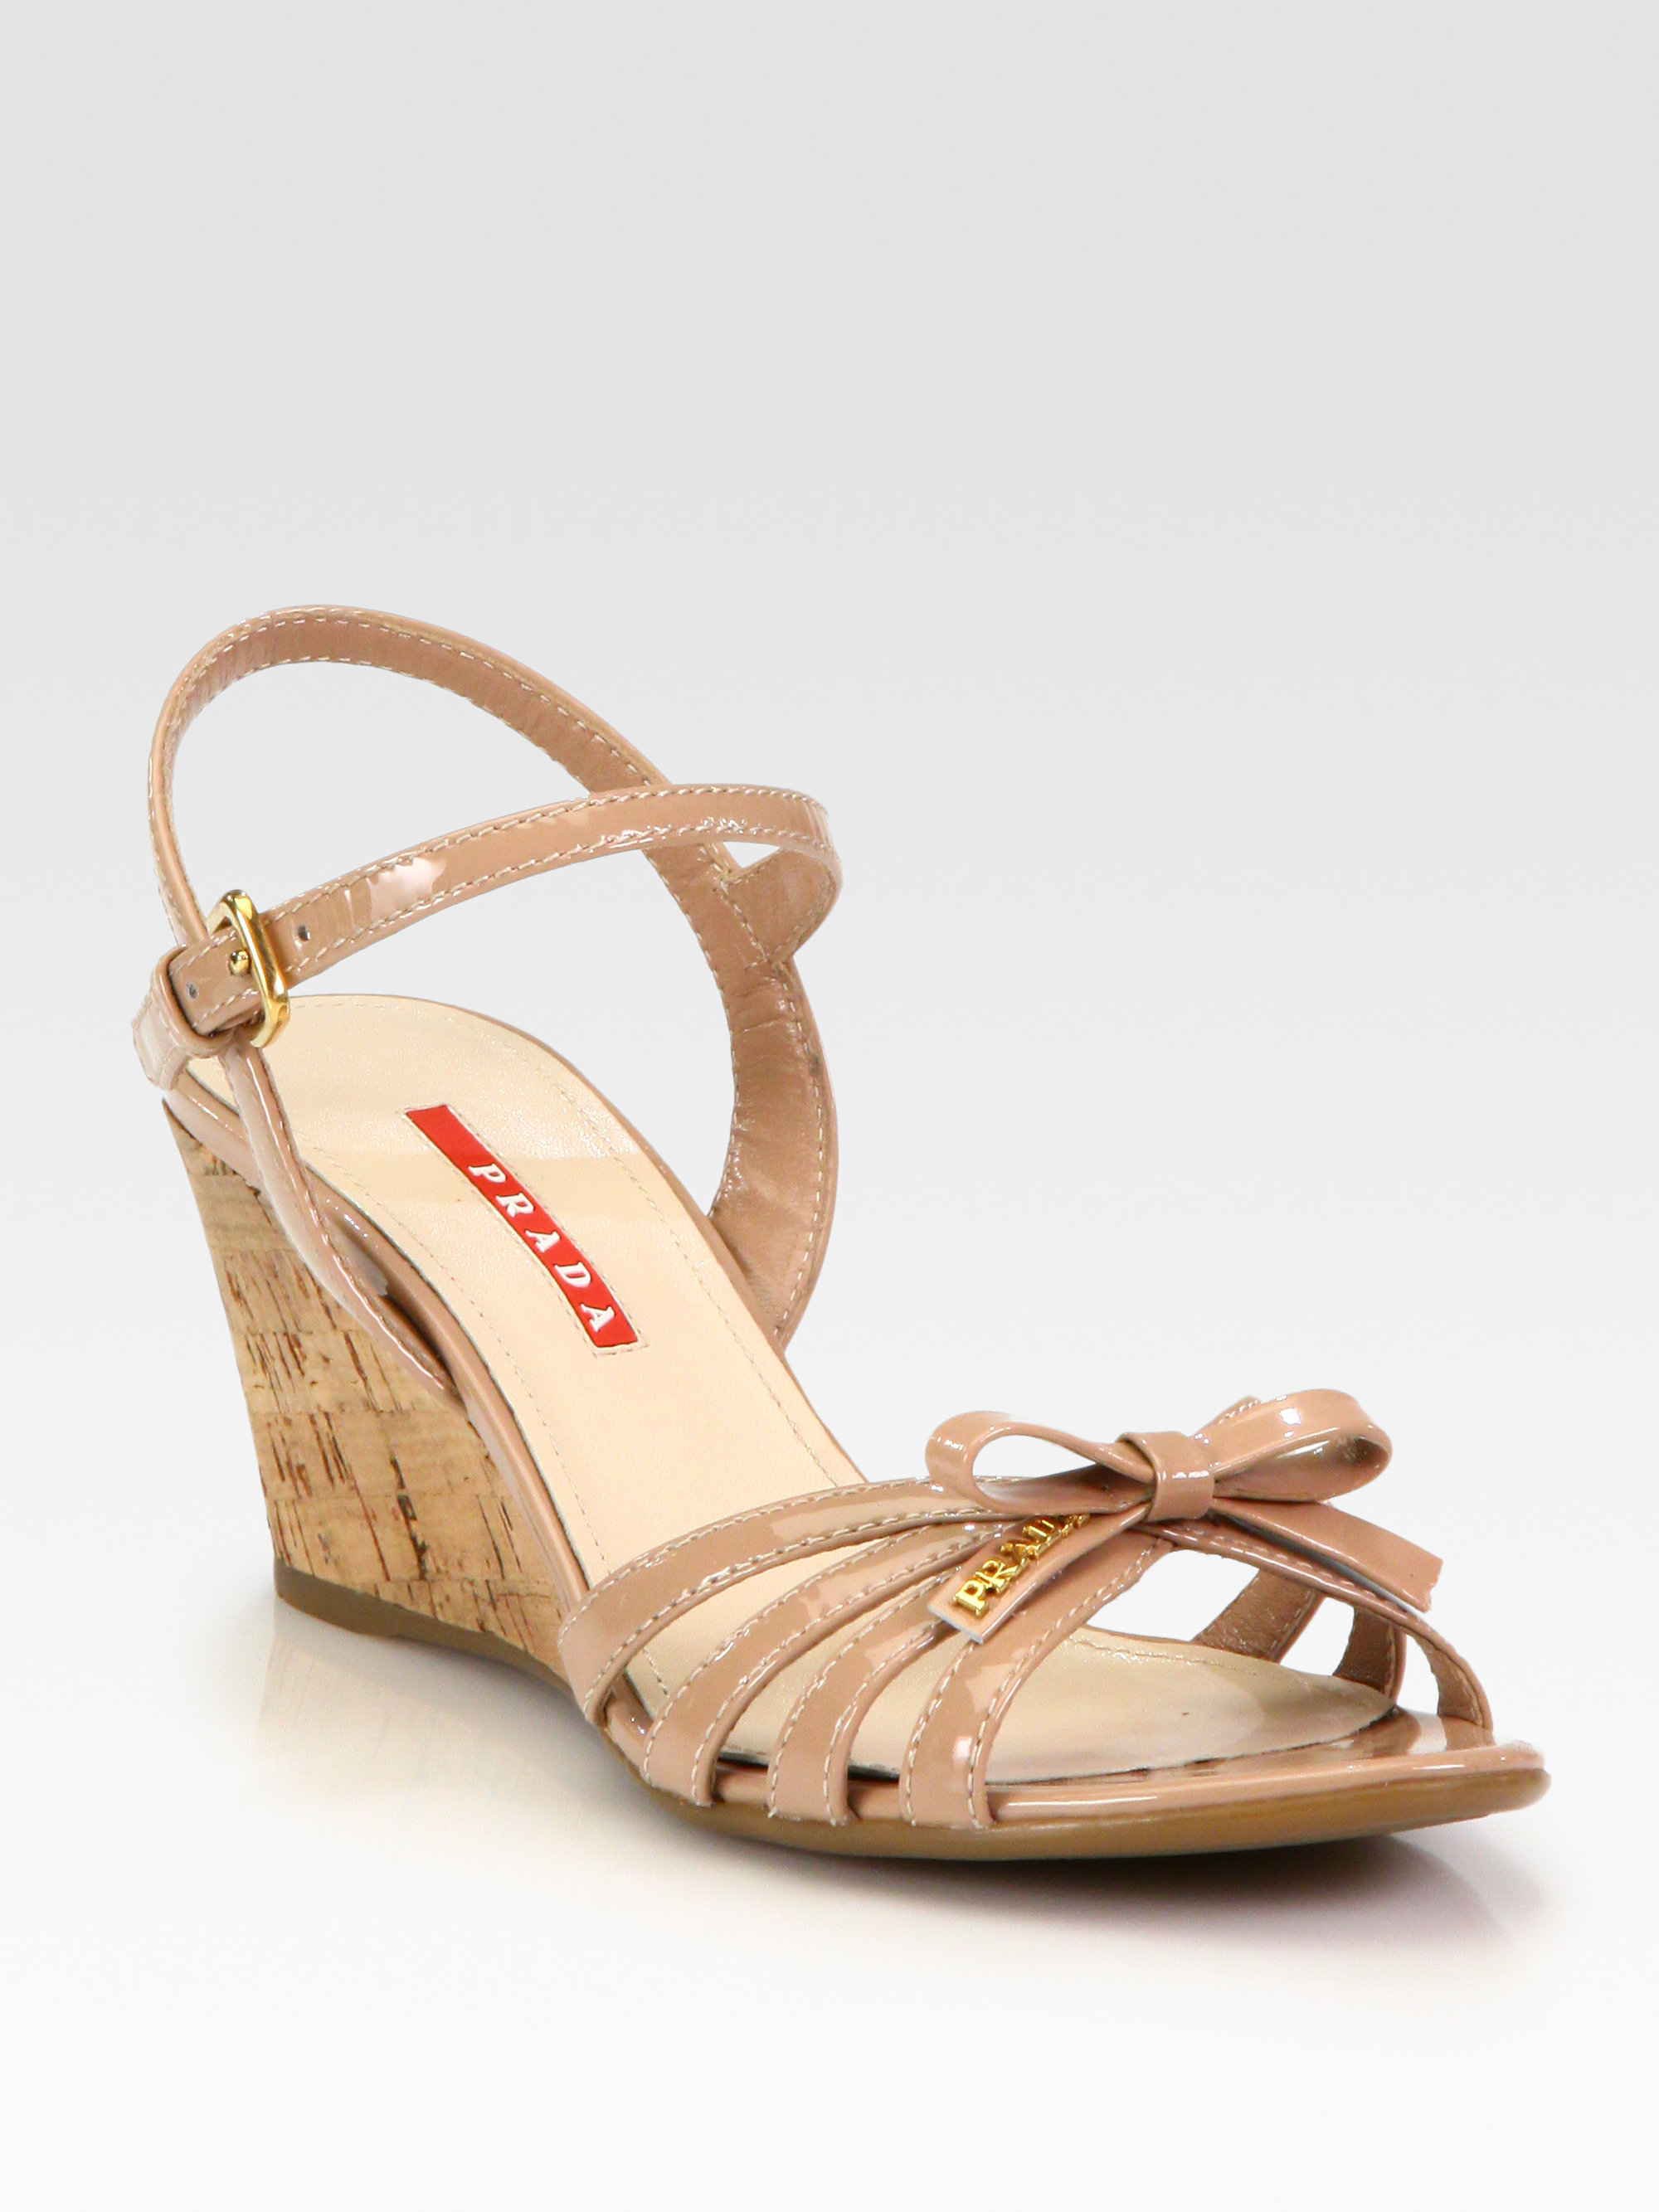 Lyst Prada Leather Bow Cork Wedge Sandals In Natural